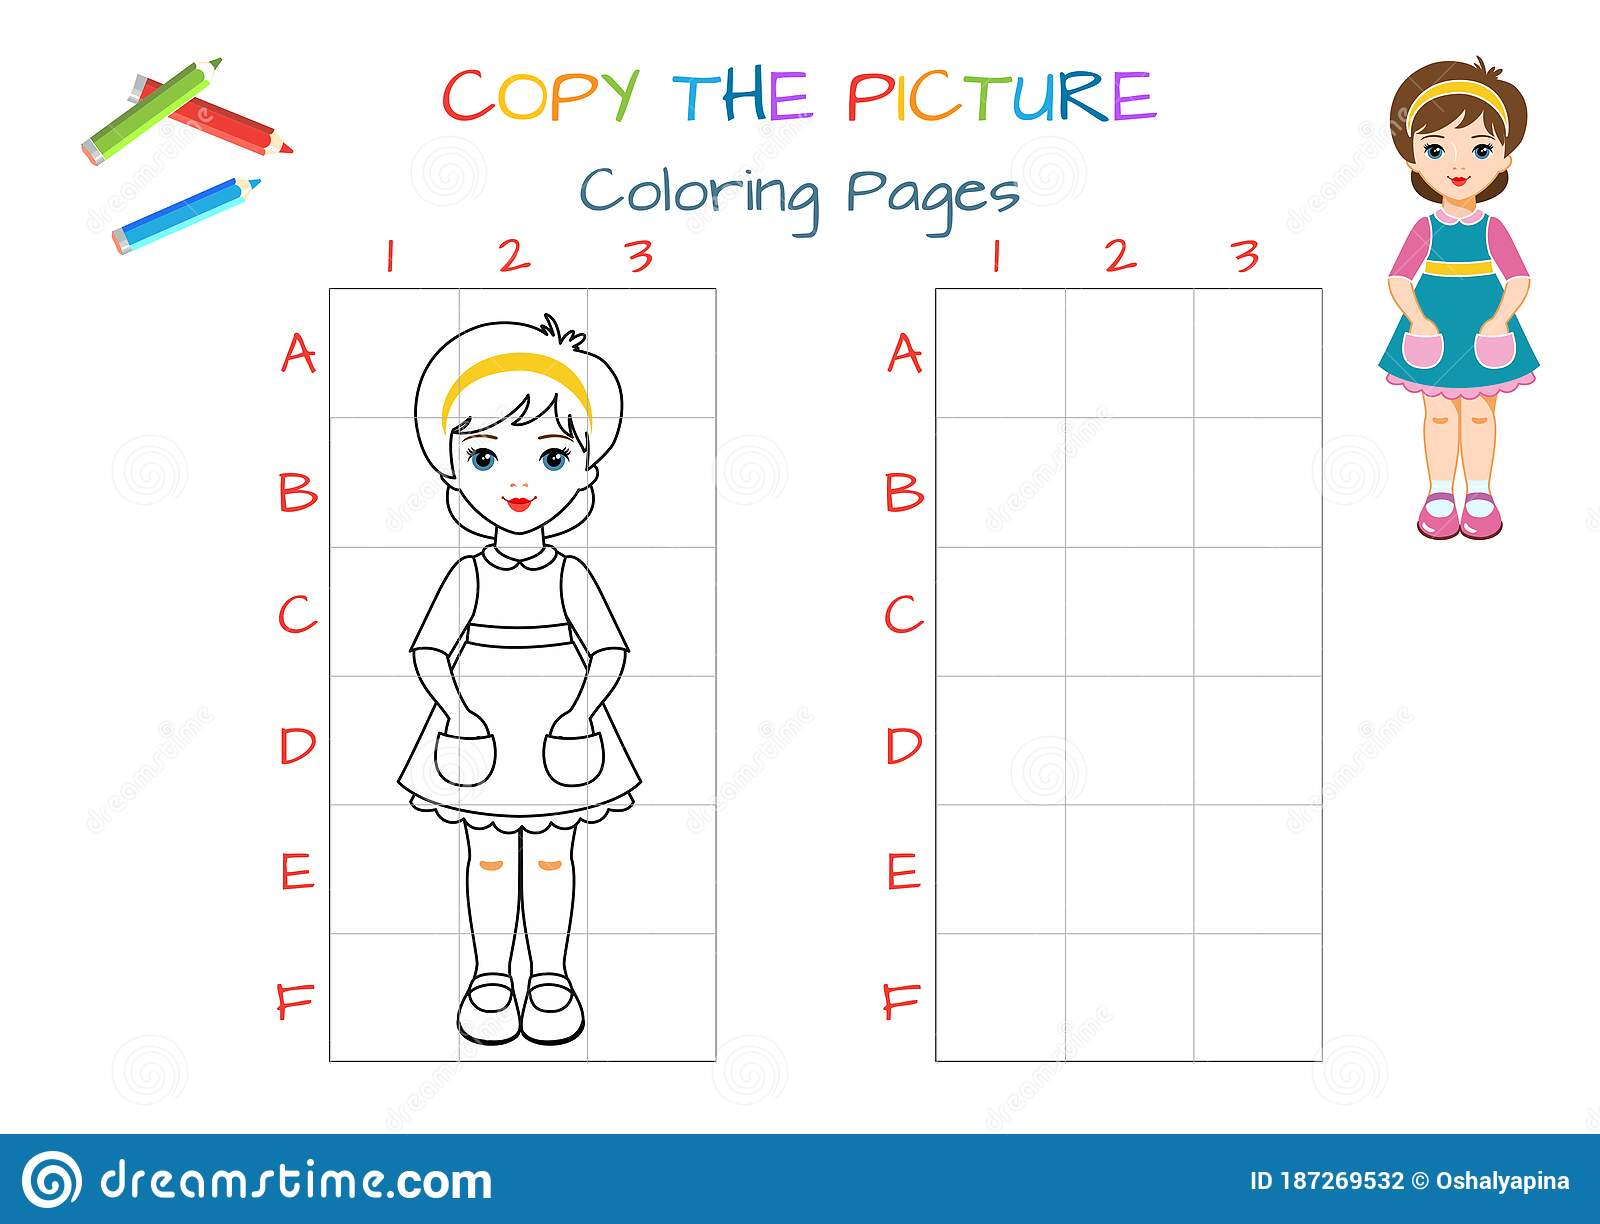 Funny Little Paper Doll Girl Copy The Picture Coloring